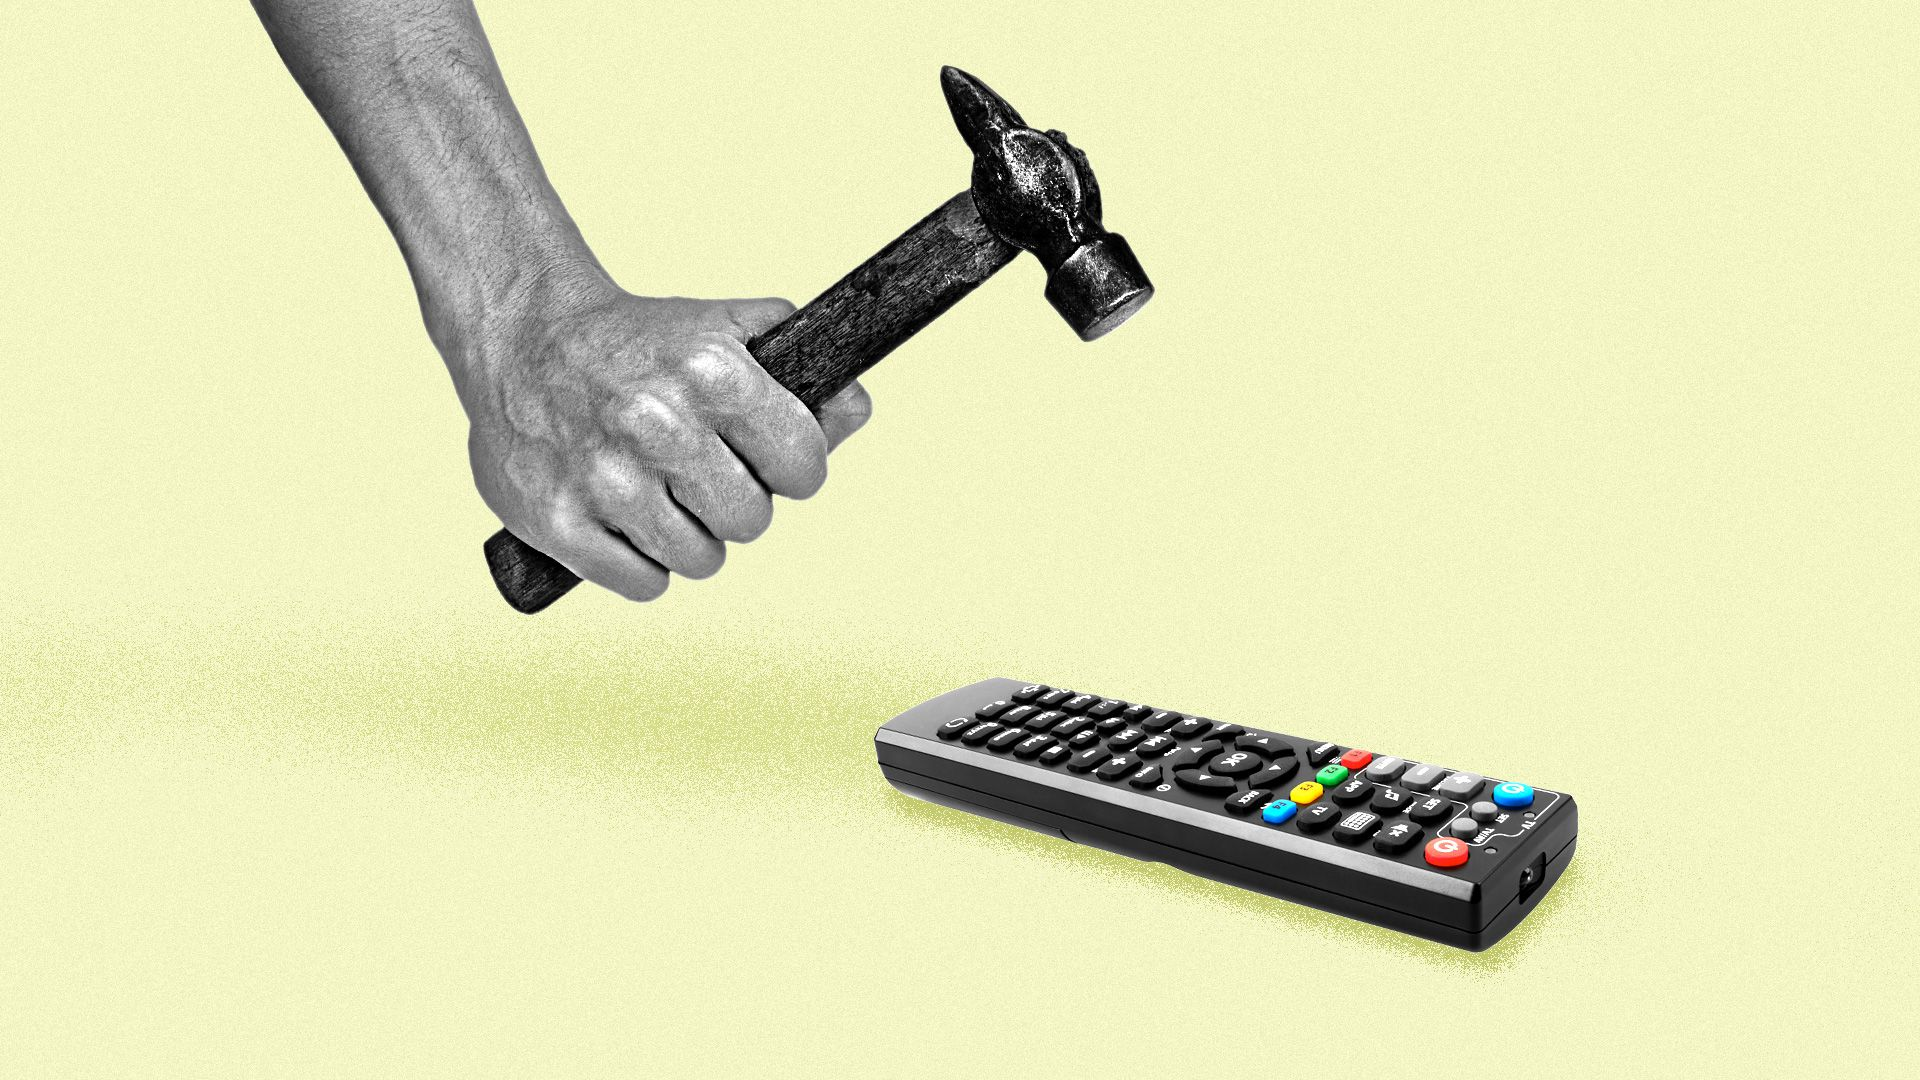 A hand with a hammer about to crush a tv remote